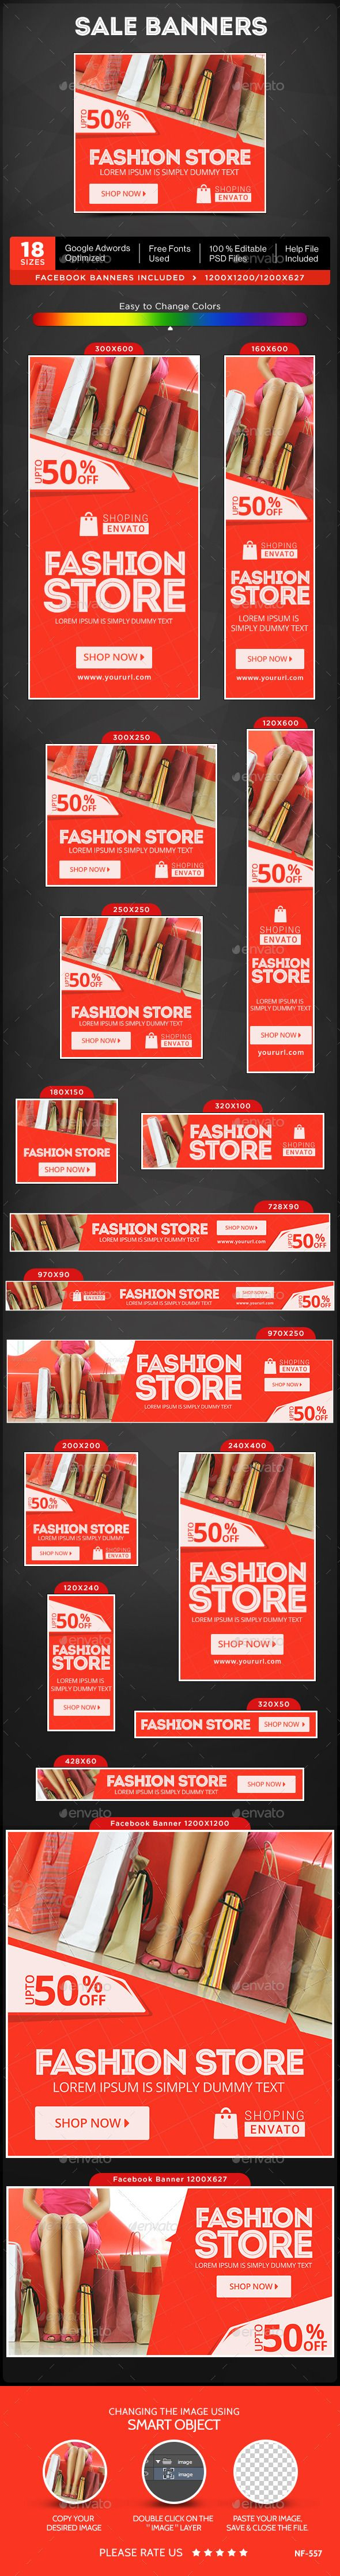 Sale Banners Template #design Download: http://graphicriver.net/item/sale-banners/12411332?ref=ksioks